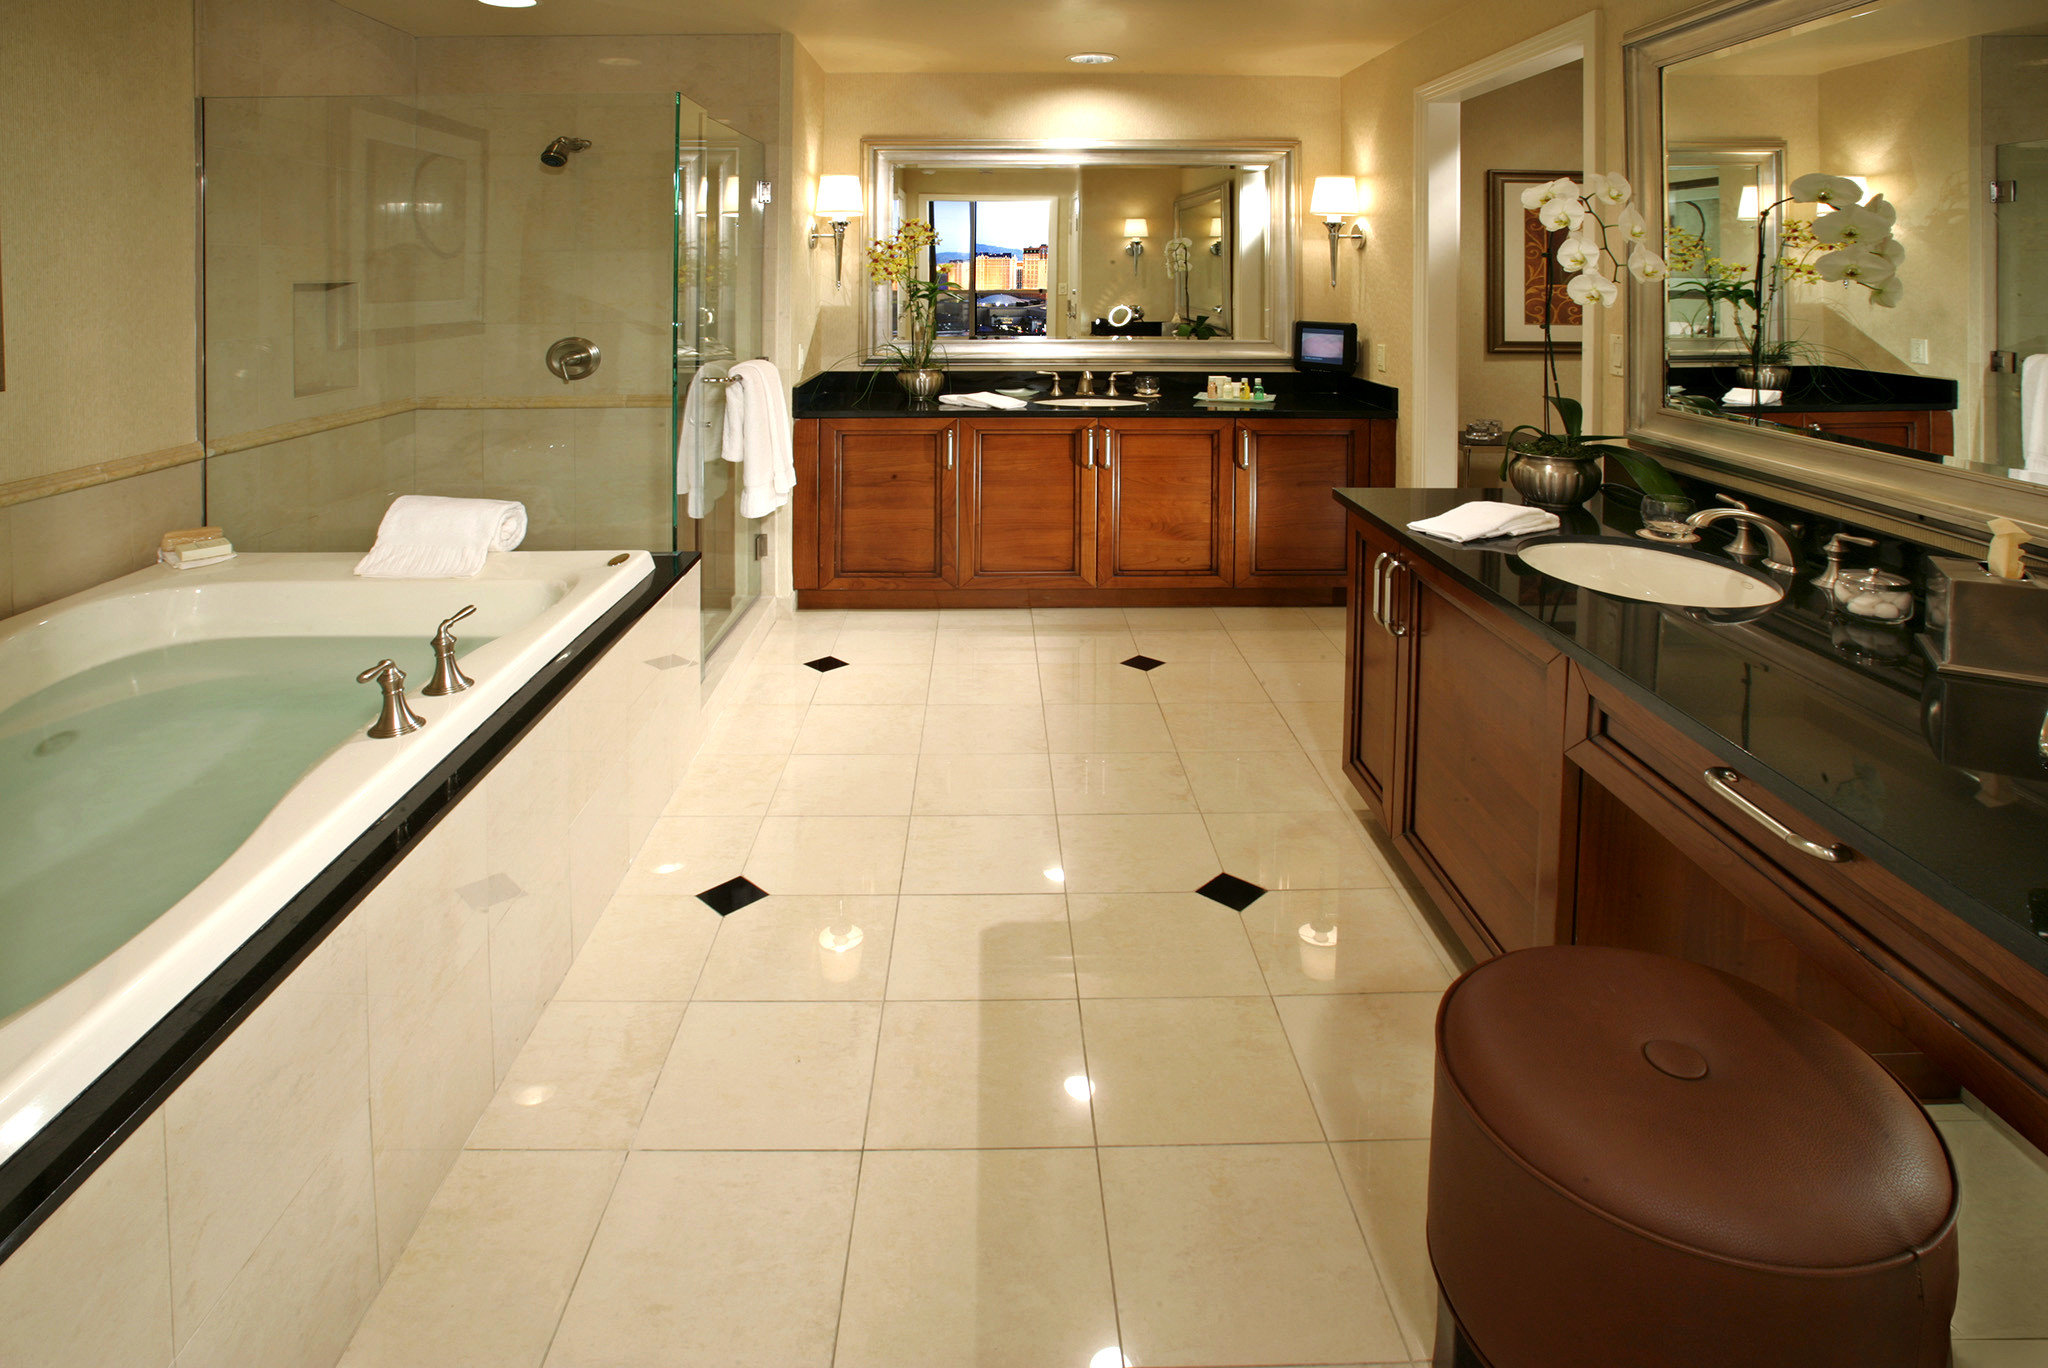 las vegas hotels with kitchen cheap in negril the signature at mgm grand nv jetsetter